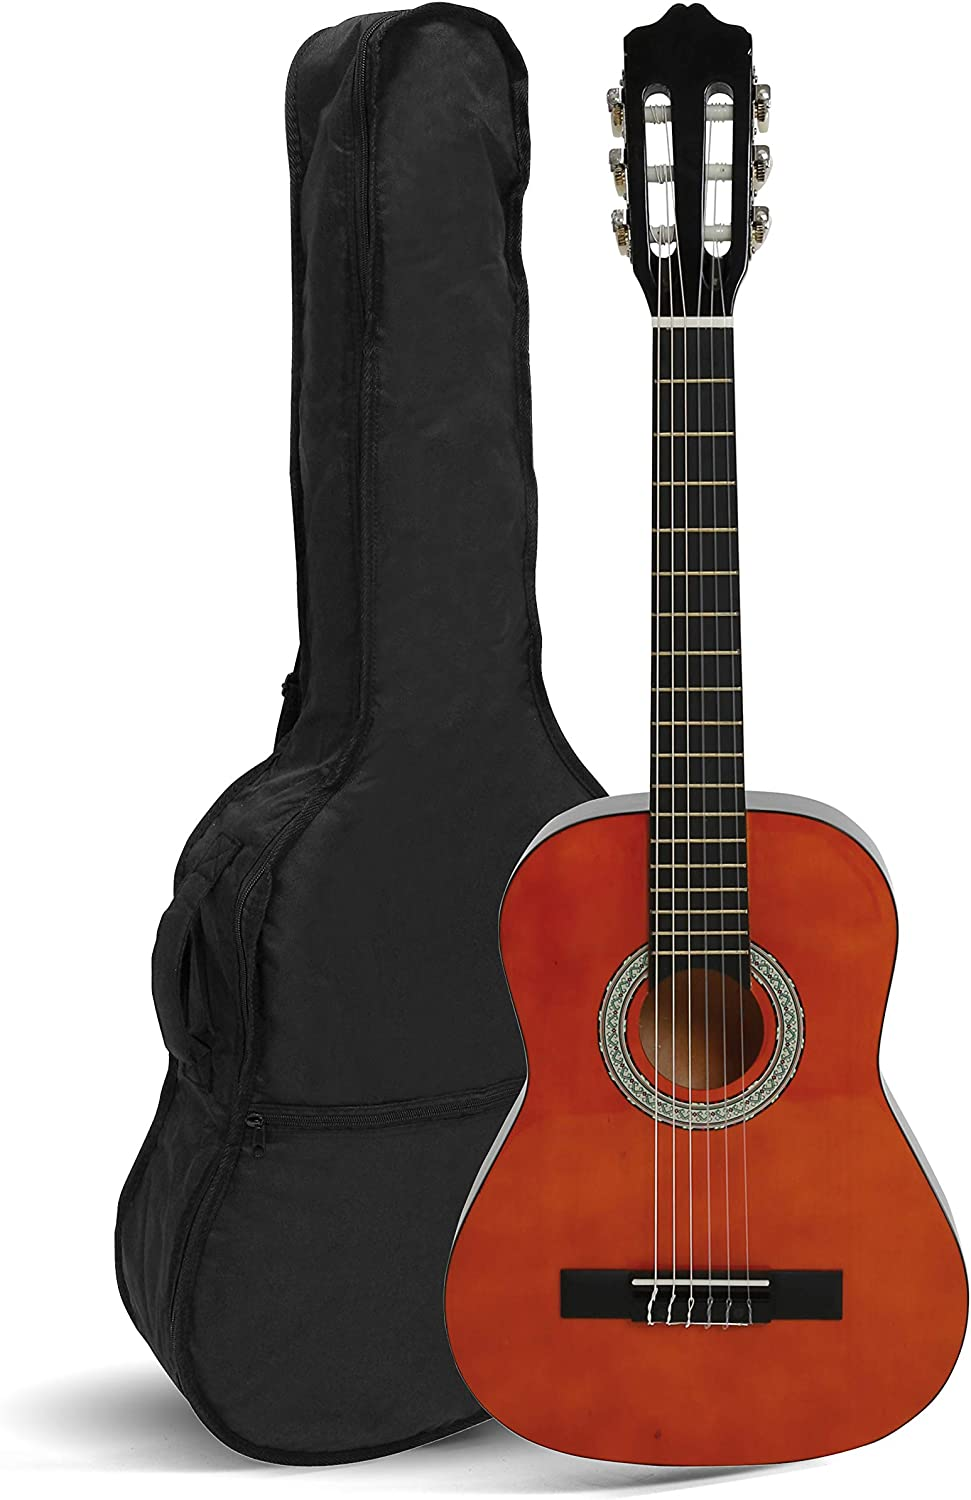 Navarra NV11 - Guitarra clásica, Miel, 4/4: Amazon.es ...